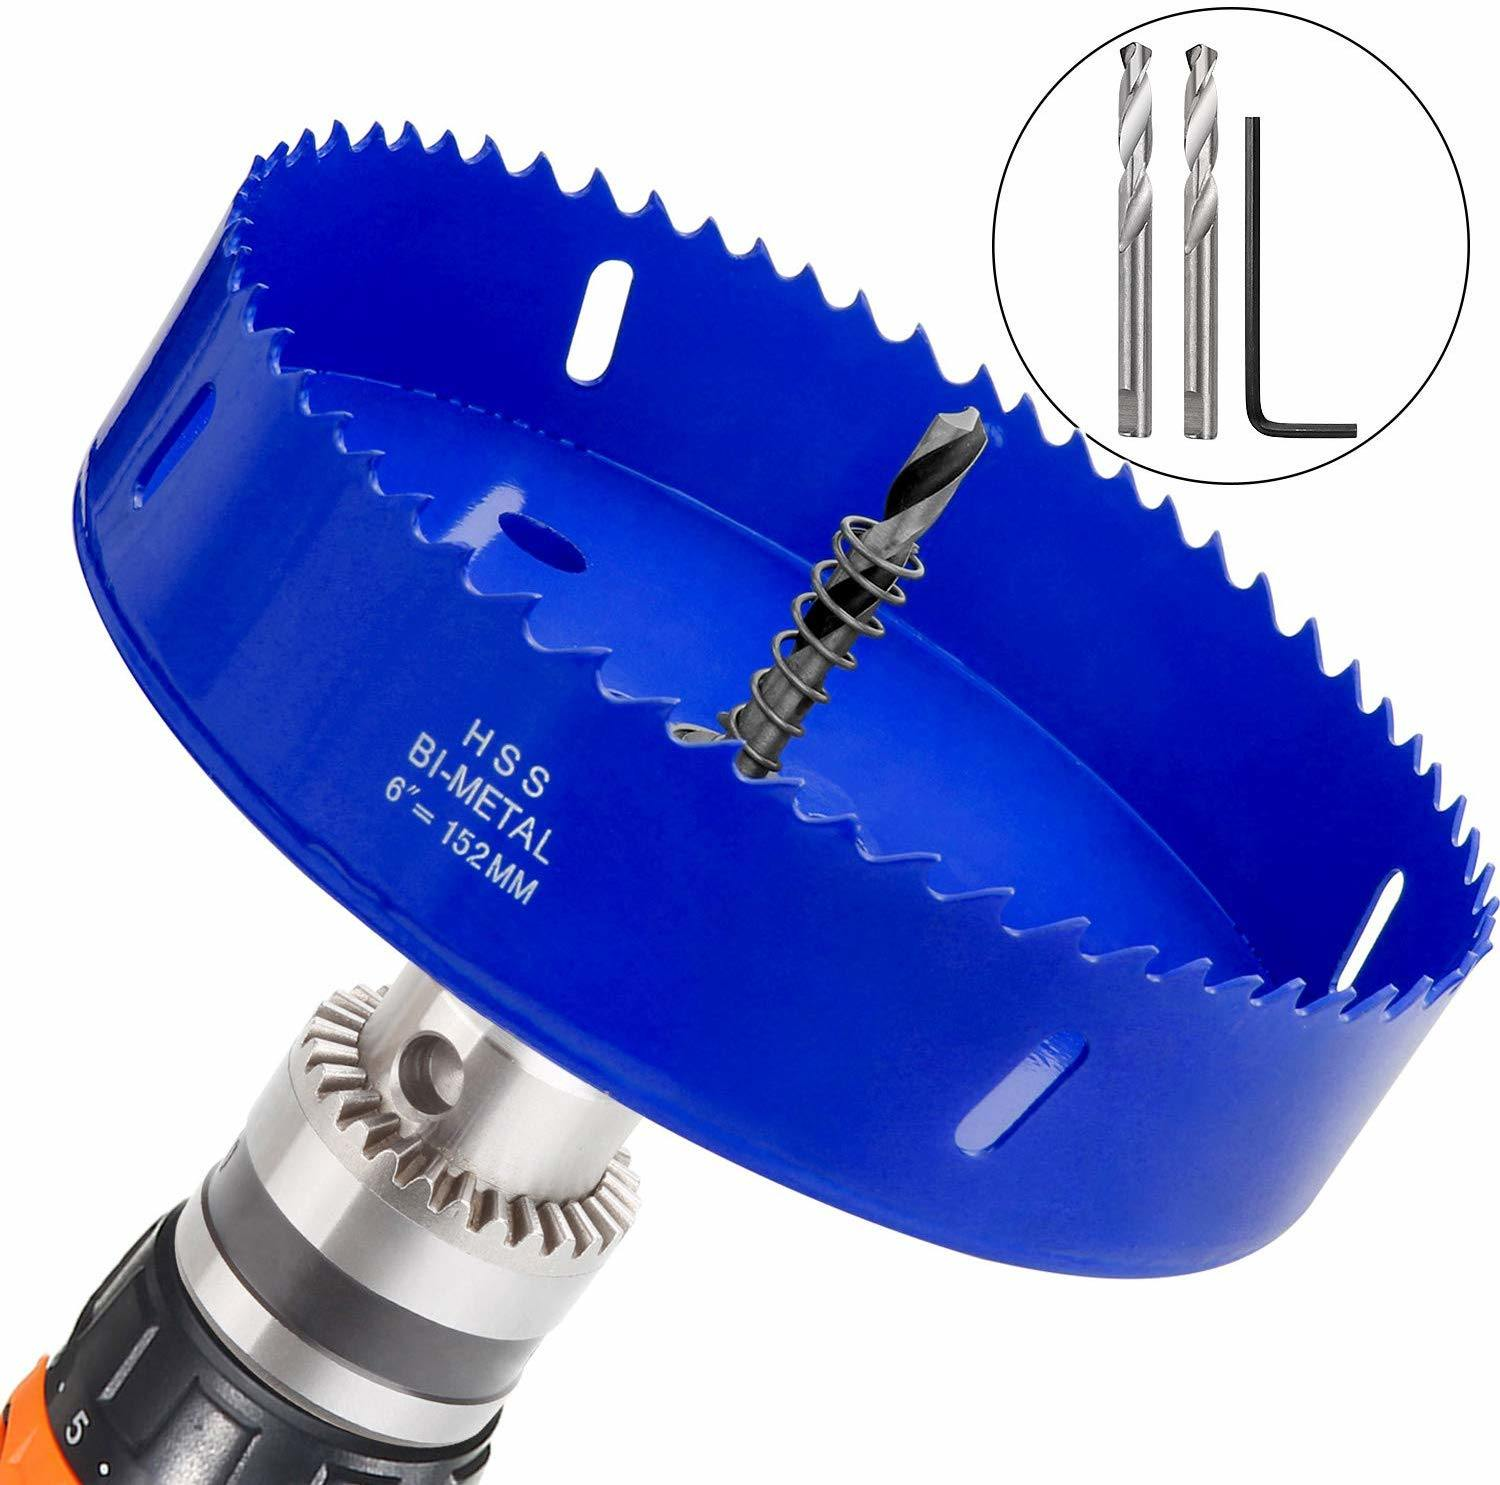 6 Inch 150mm Hole Saw Tooth Kit Steel Drill Bit Set Cutter Tool For Wood Plastic